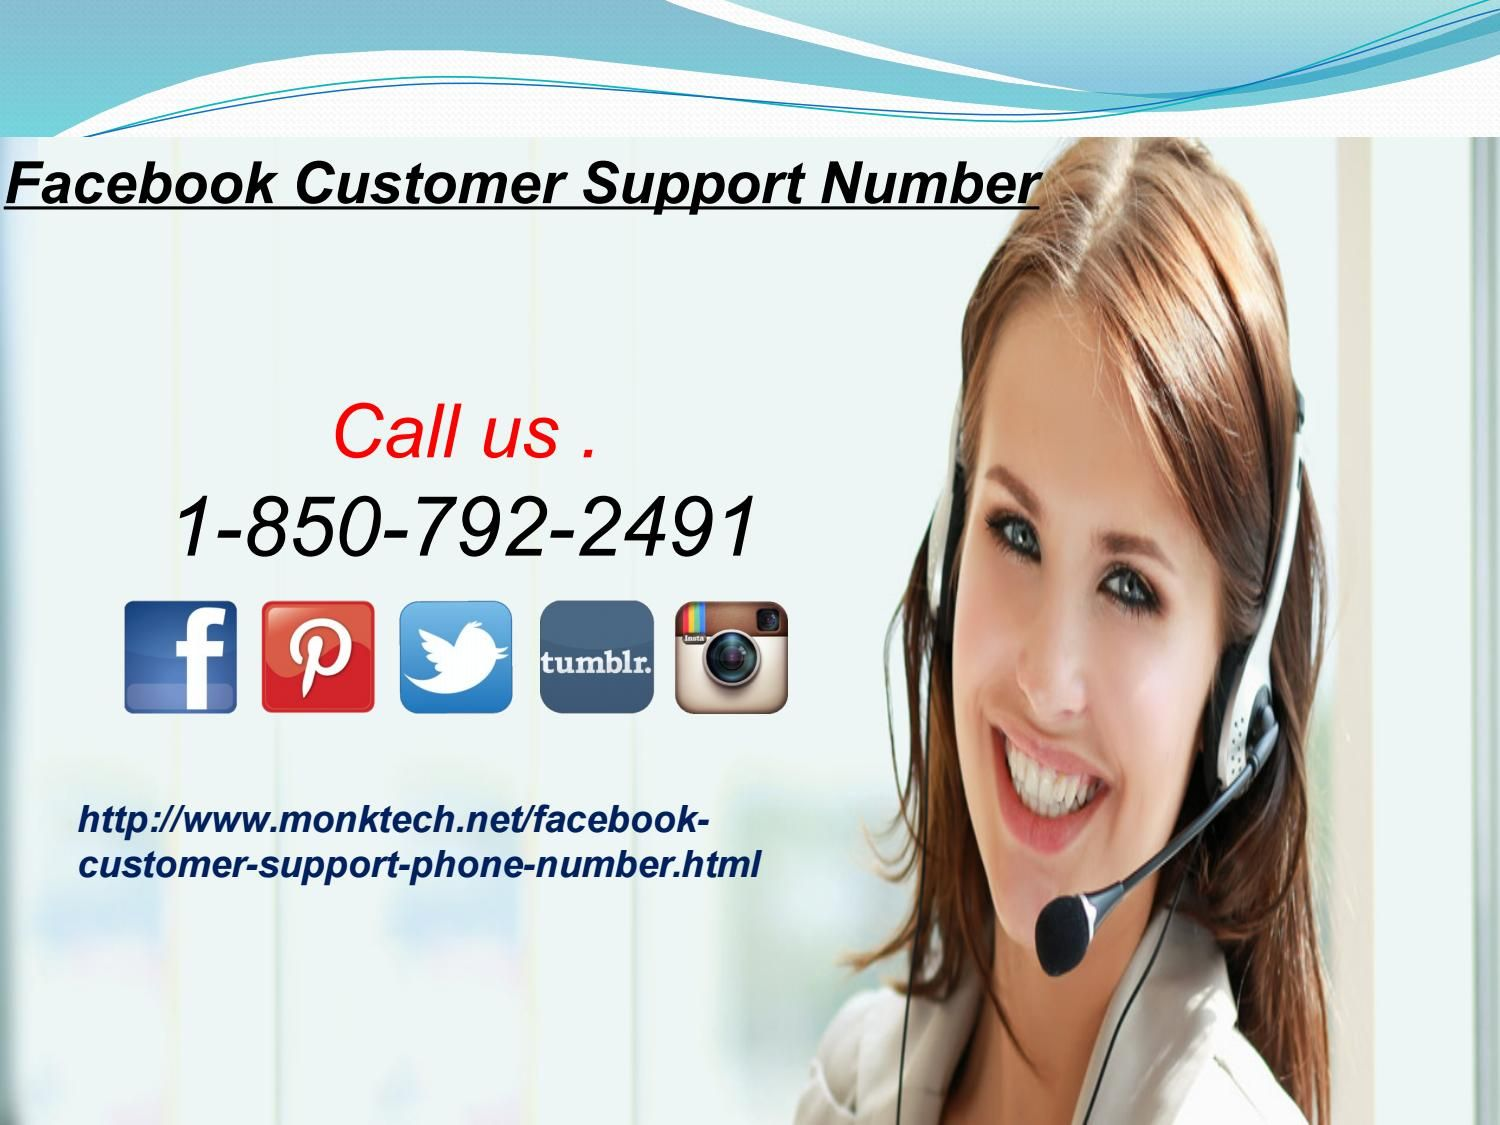 Is facebook phone number just for particular spots 1850